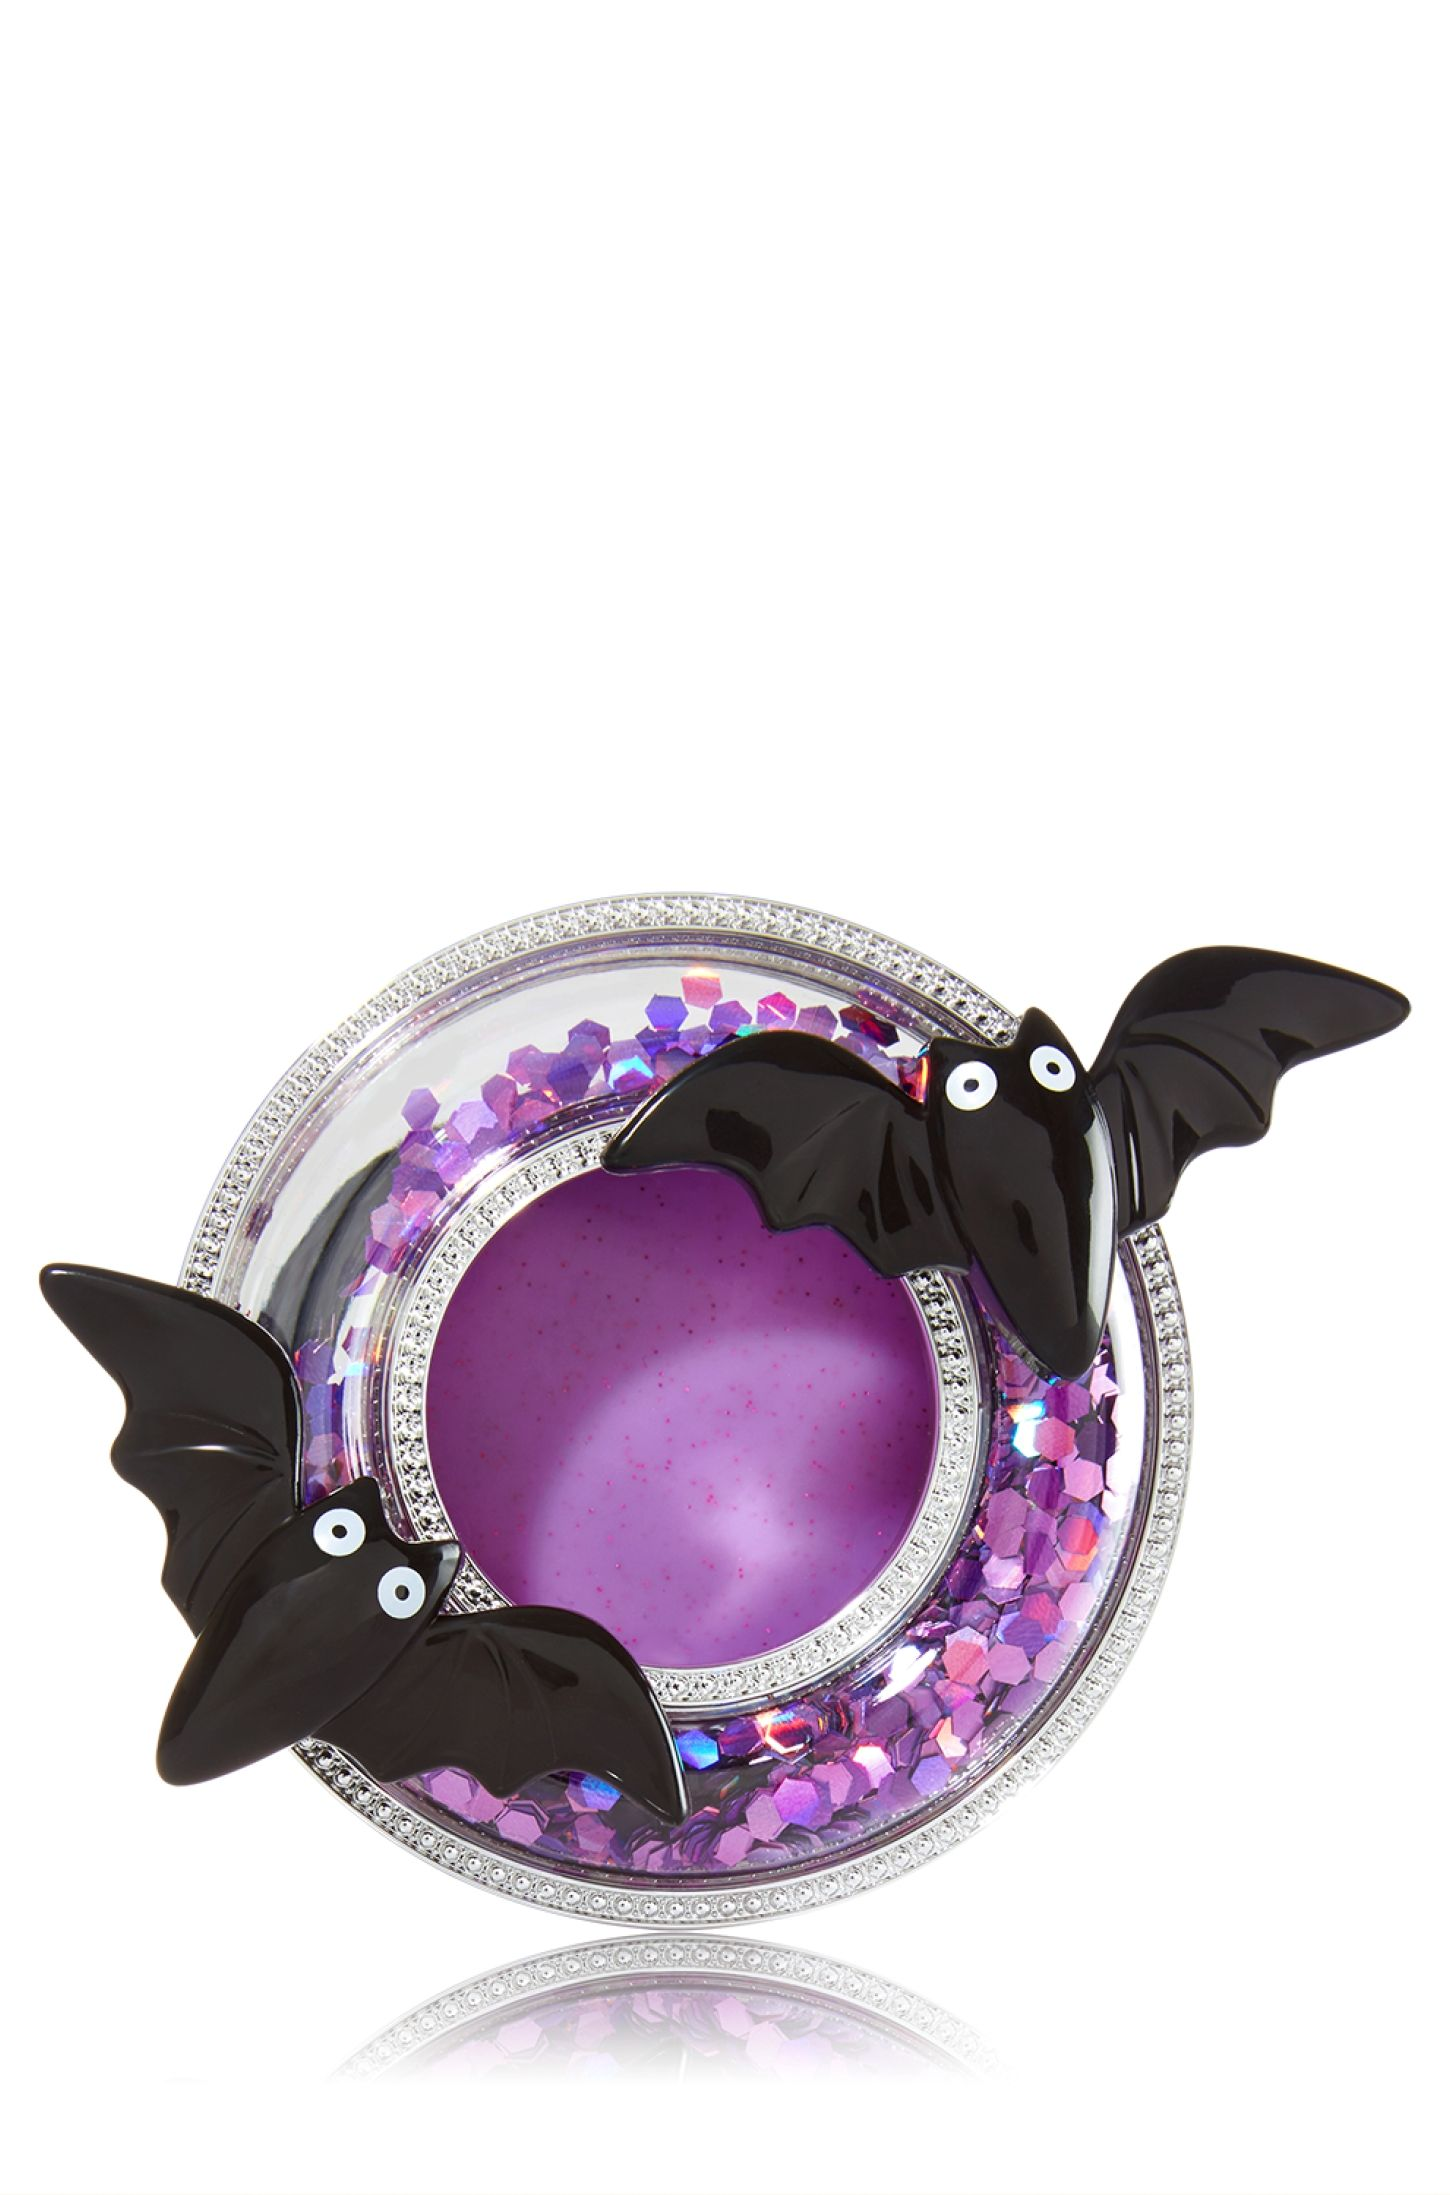 Bath /& Body Works Scentportable Purple Shiny Bow Holiday Ornament Limited